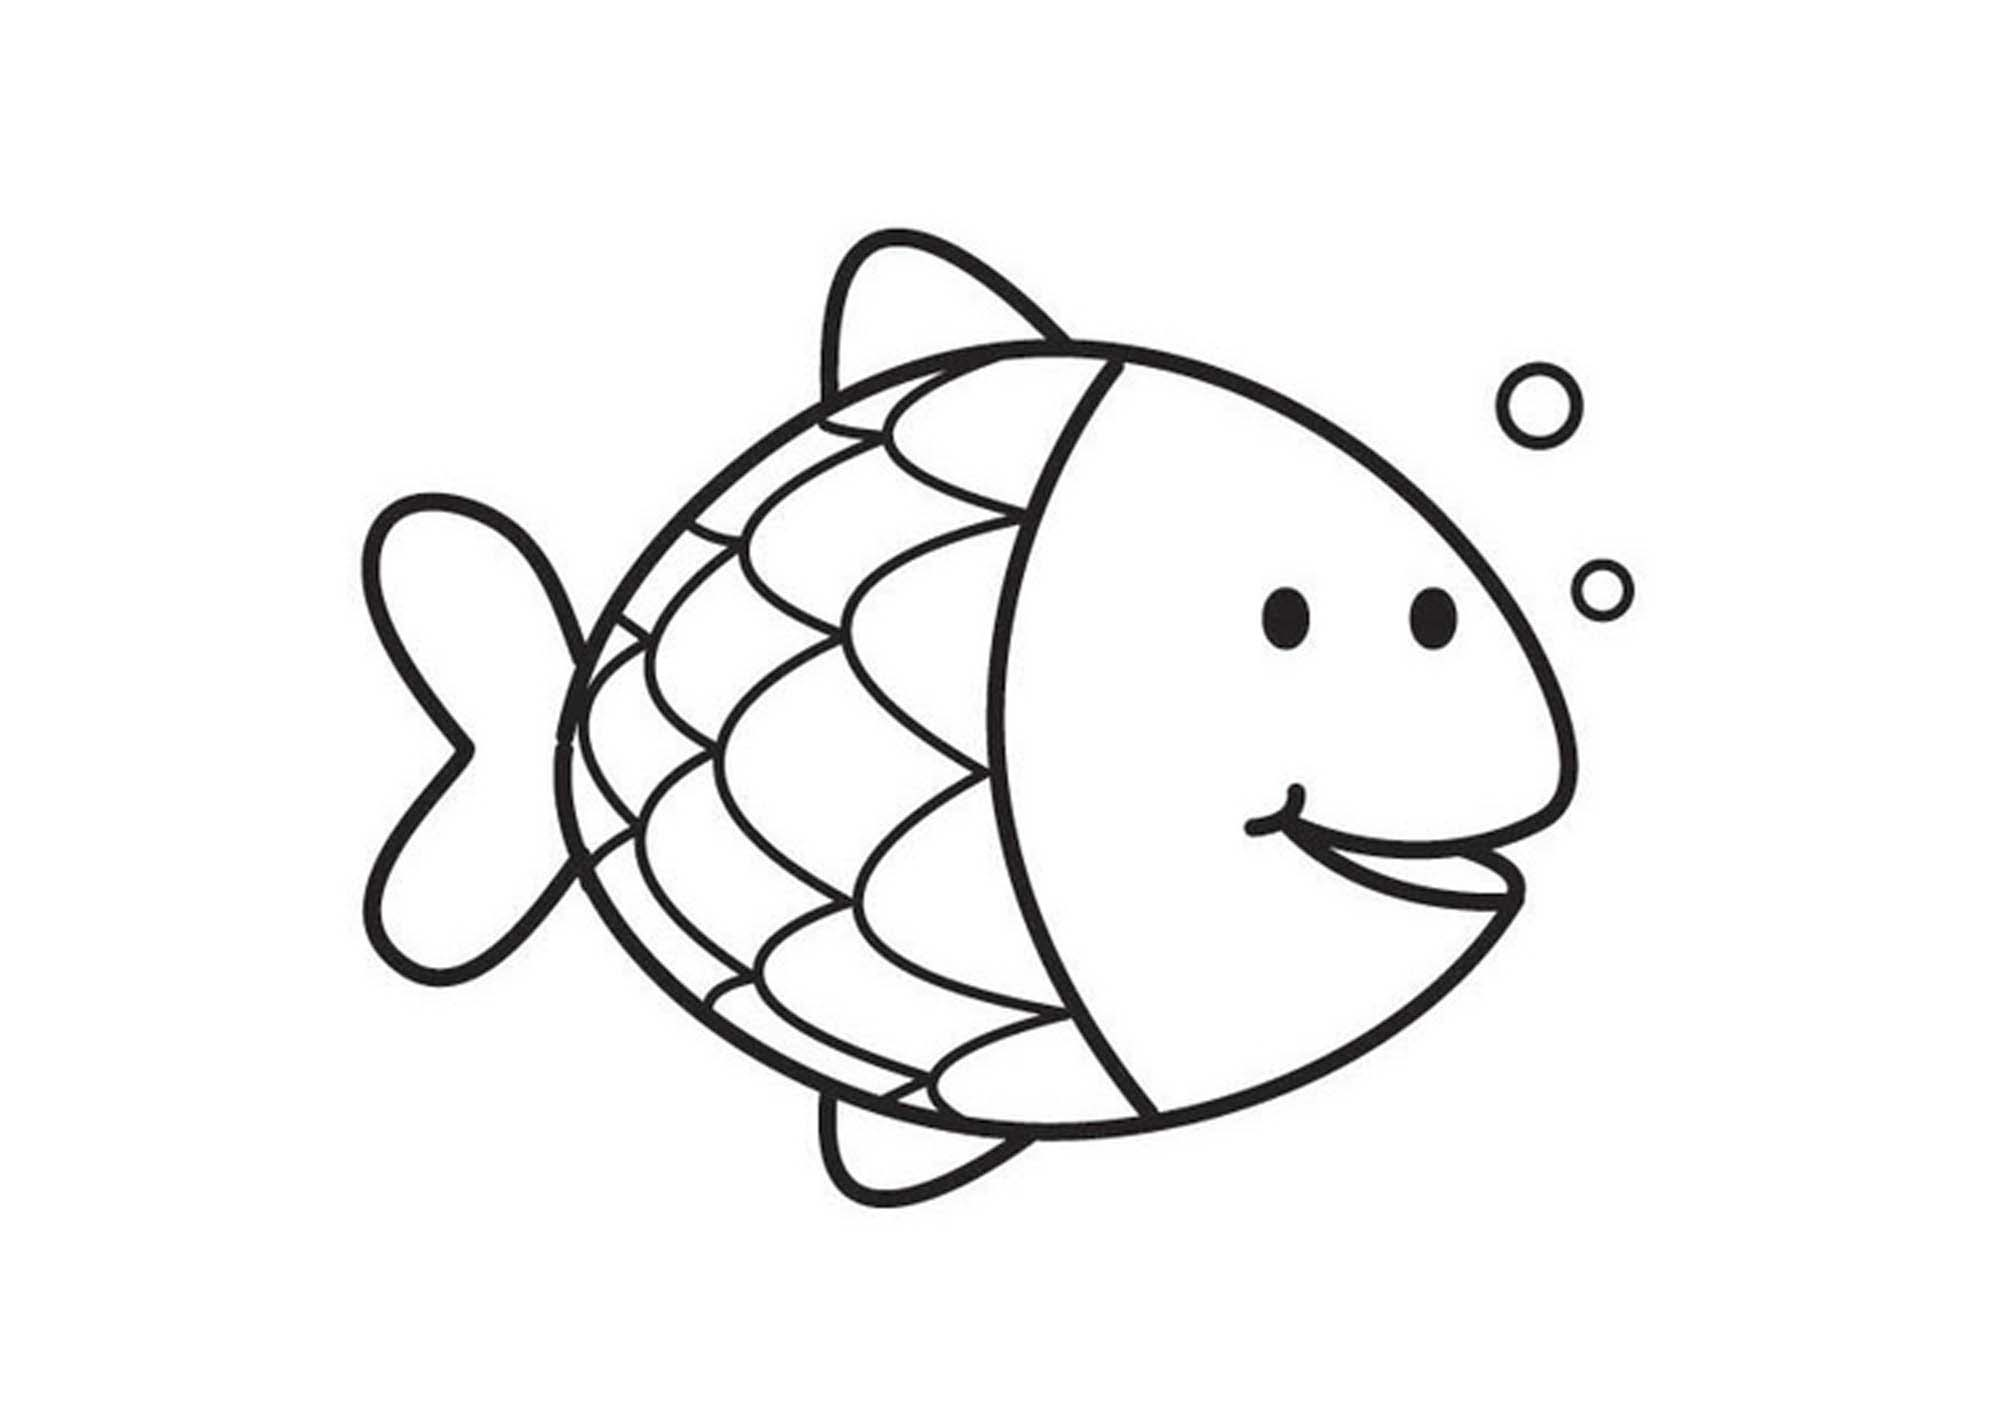 fish picture to color free printable rainbow fish coloring pages funsoke picture to color fish